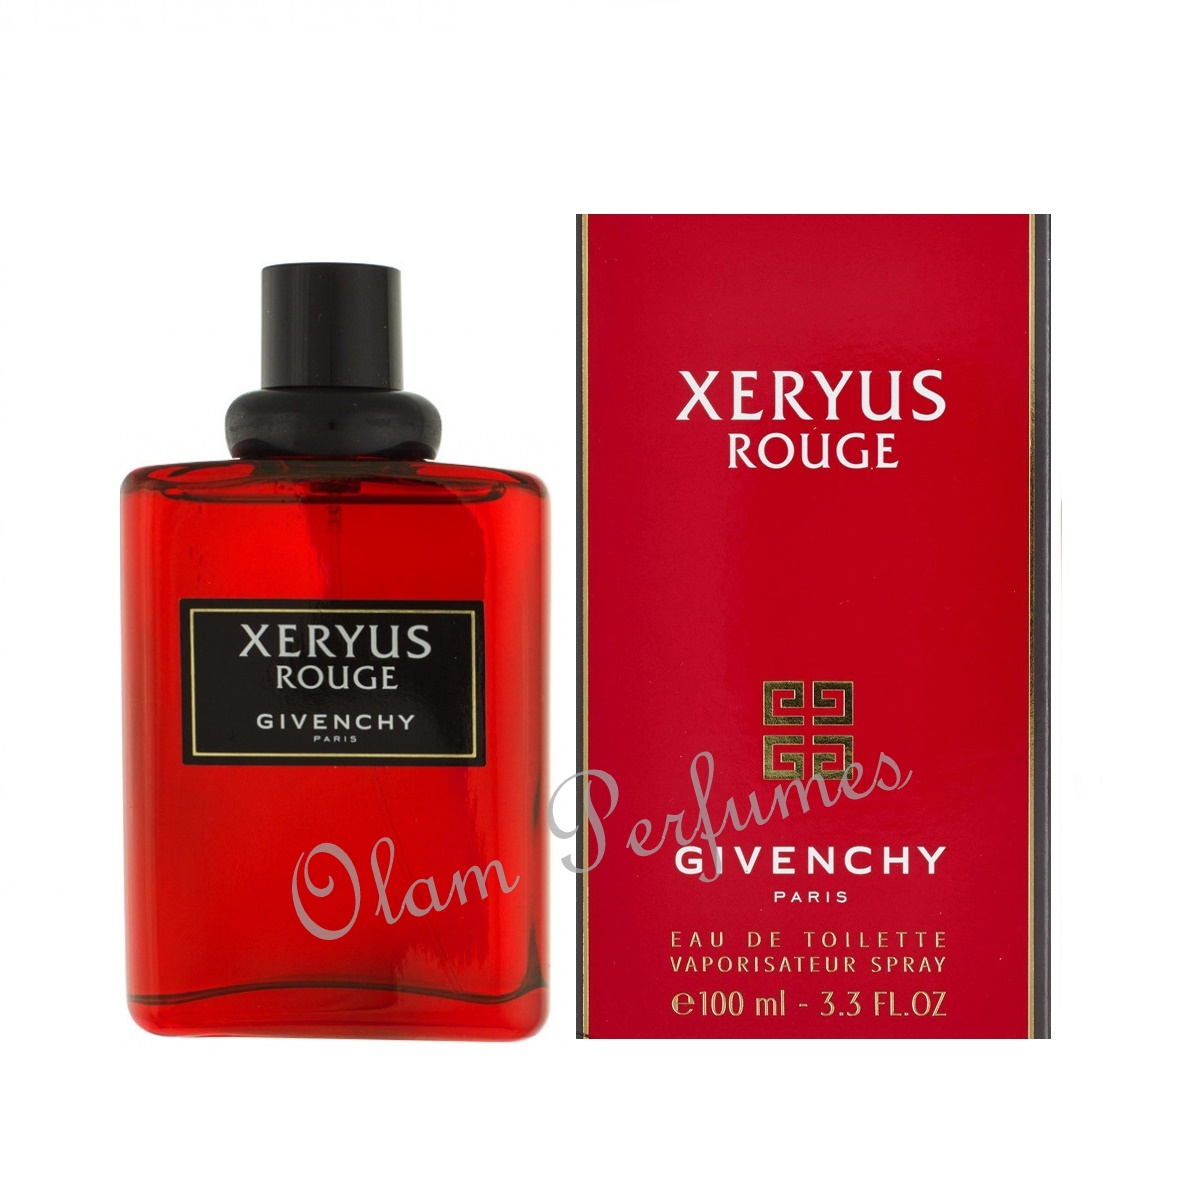 Givenchy Xeryus Rouge For Men Eau de Toilette Spray 3.3oz 100ml